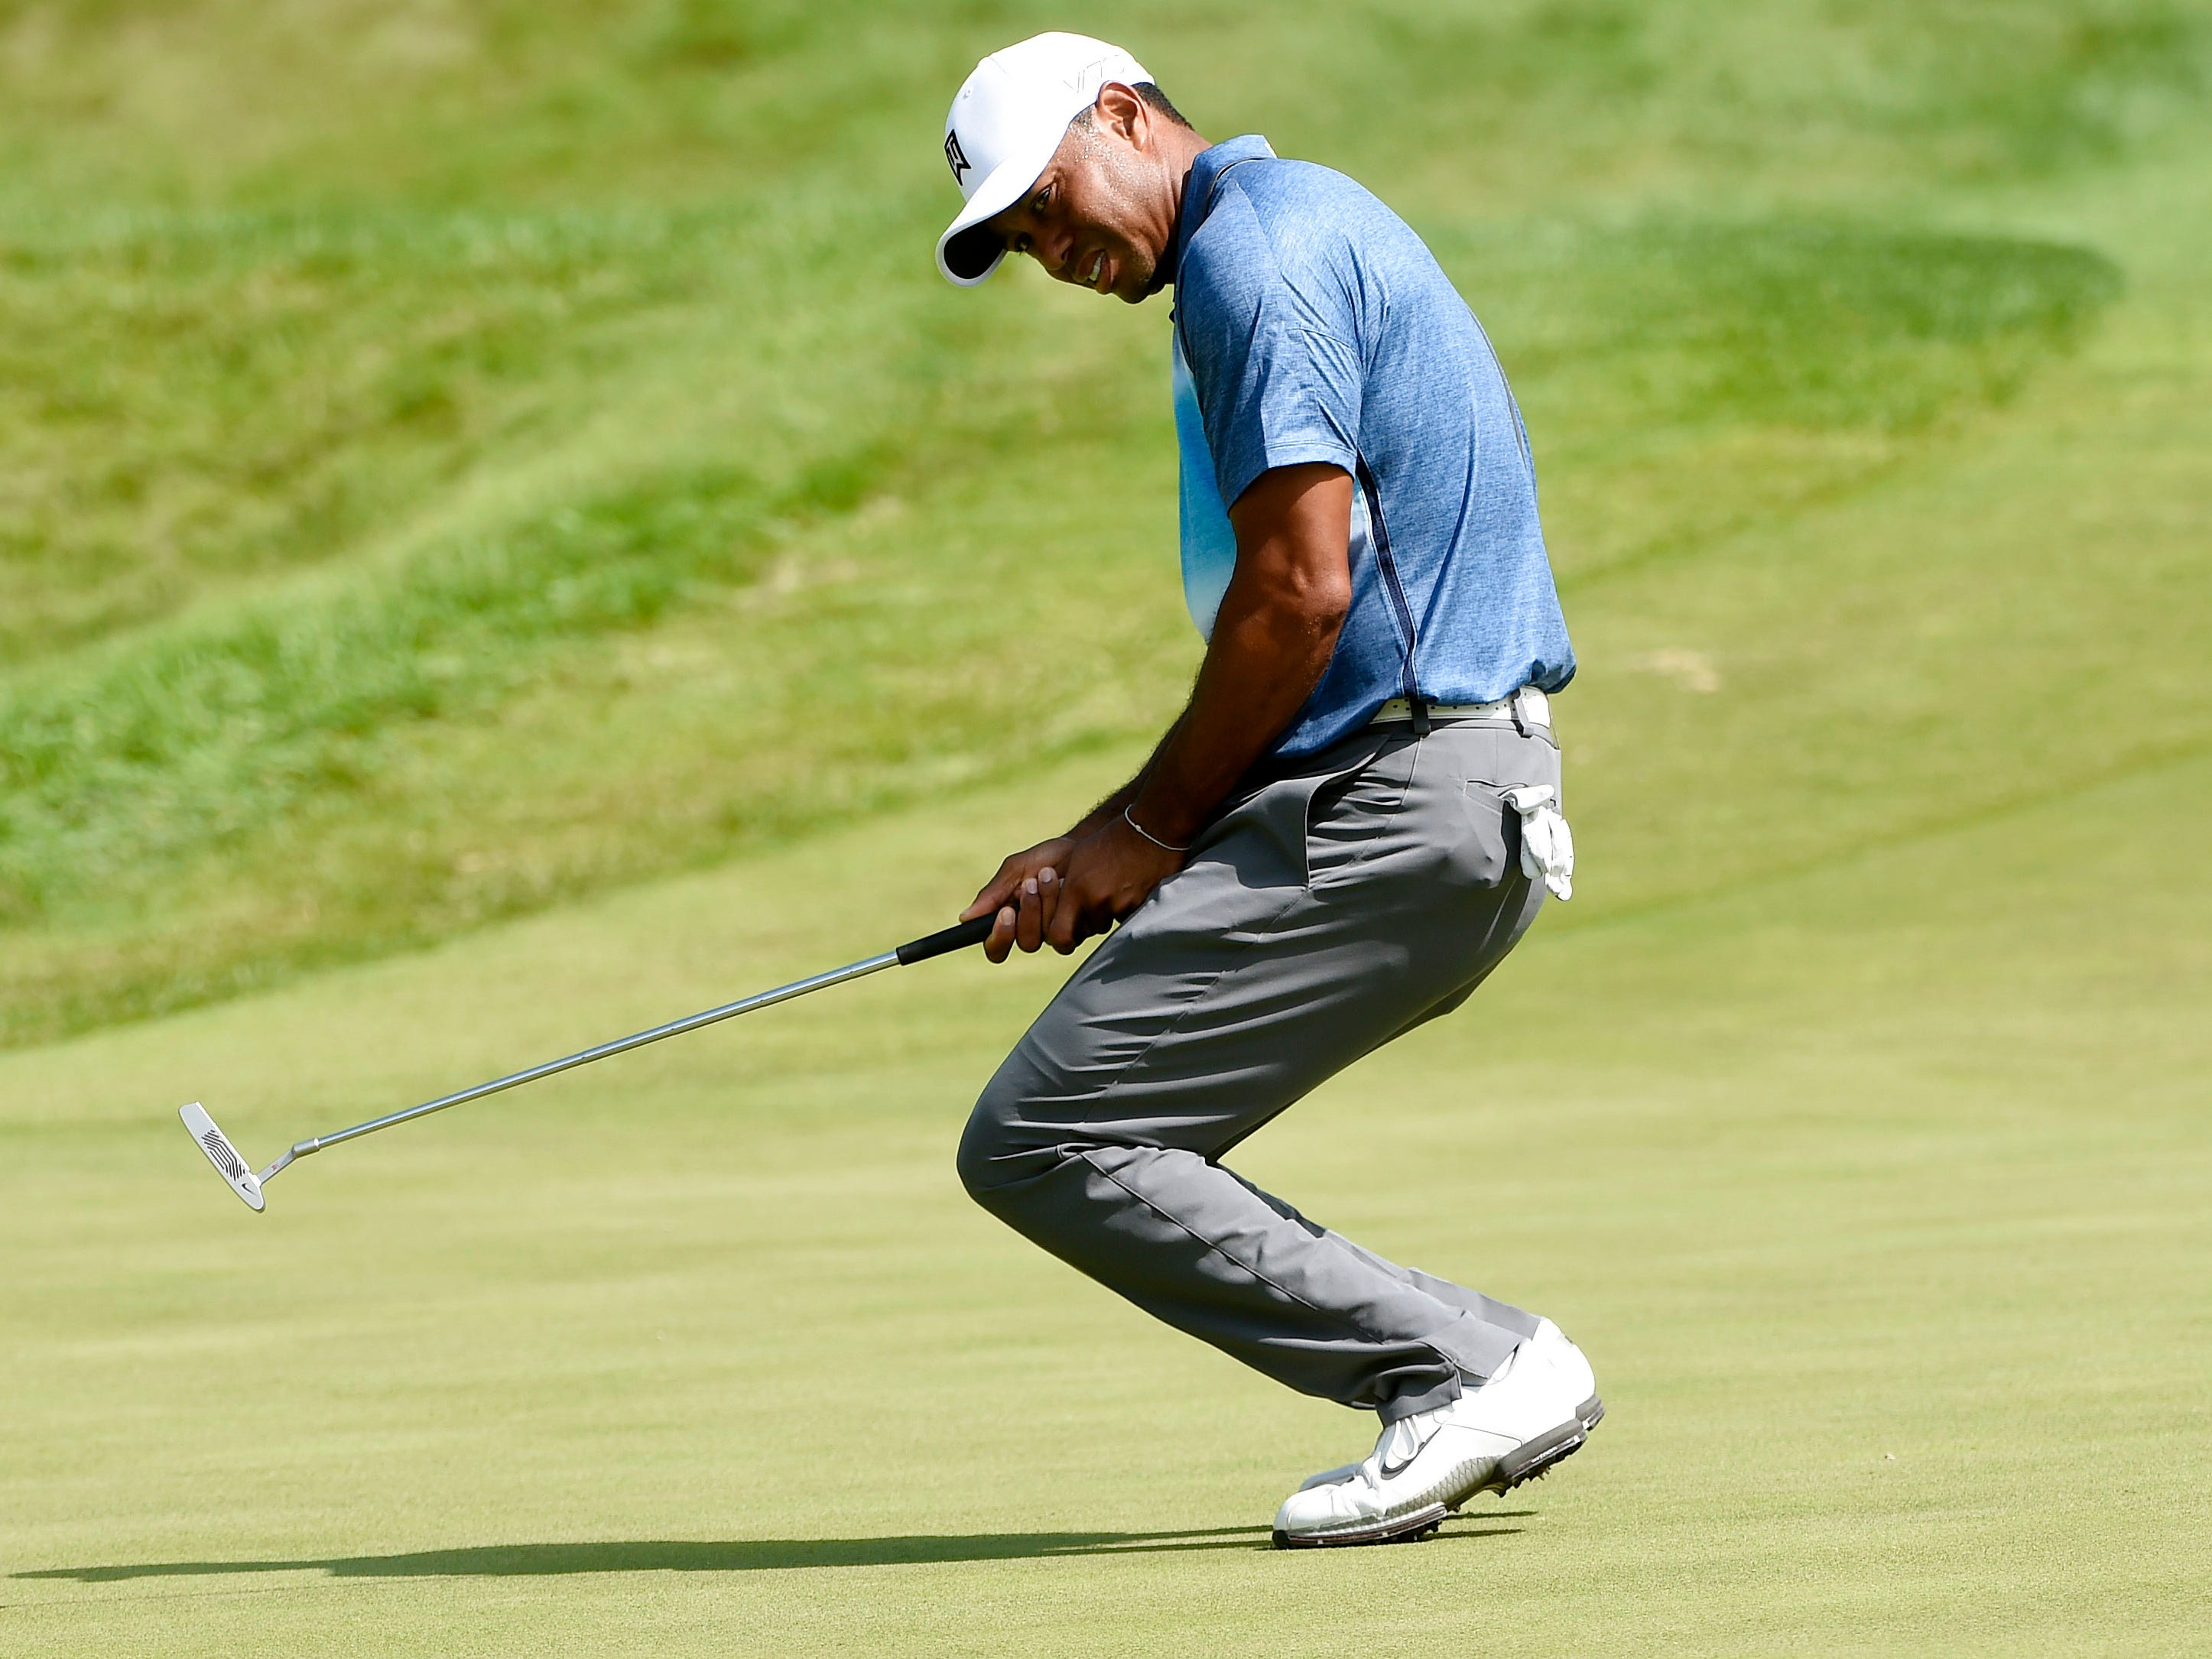 In September 2015 after missing the cut in three of the four majors, Woods has a second back surgery. Here he's shown at the 2015 PGA Championship  at Whistling Straits.